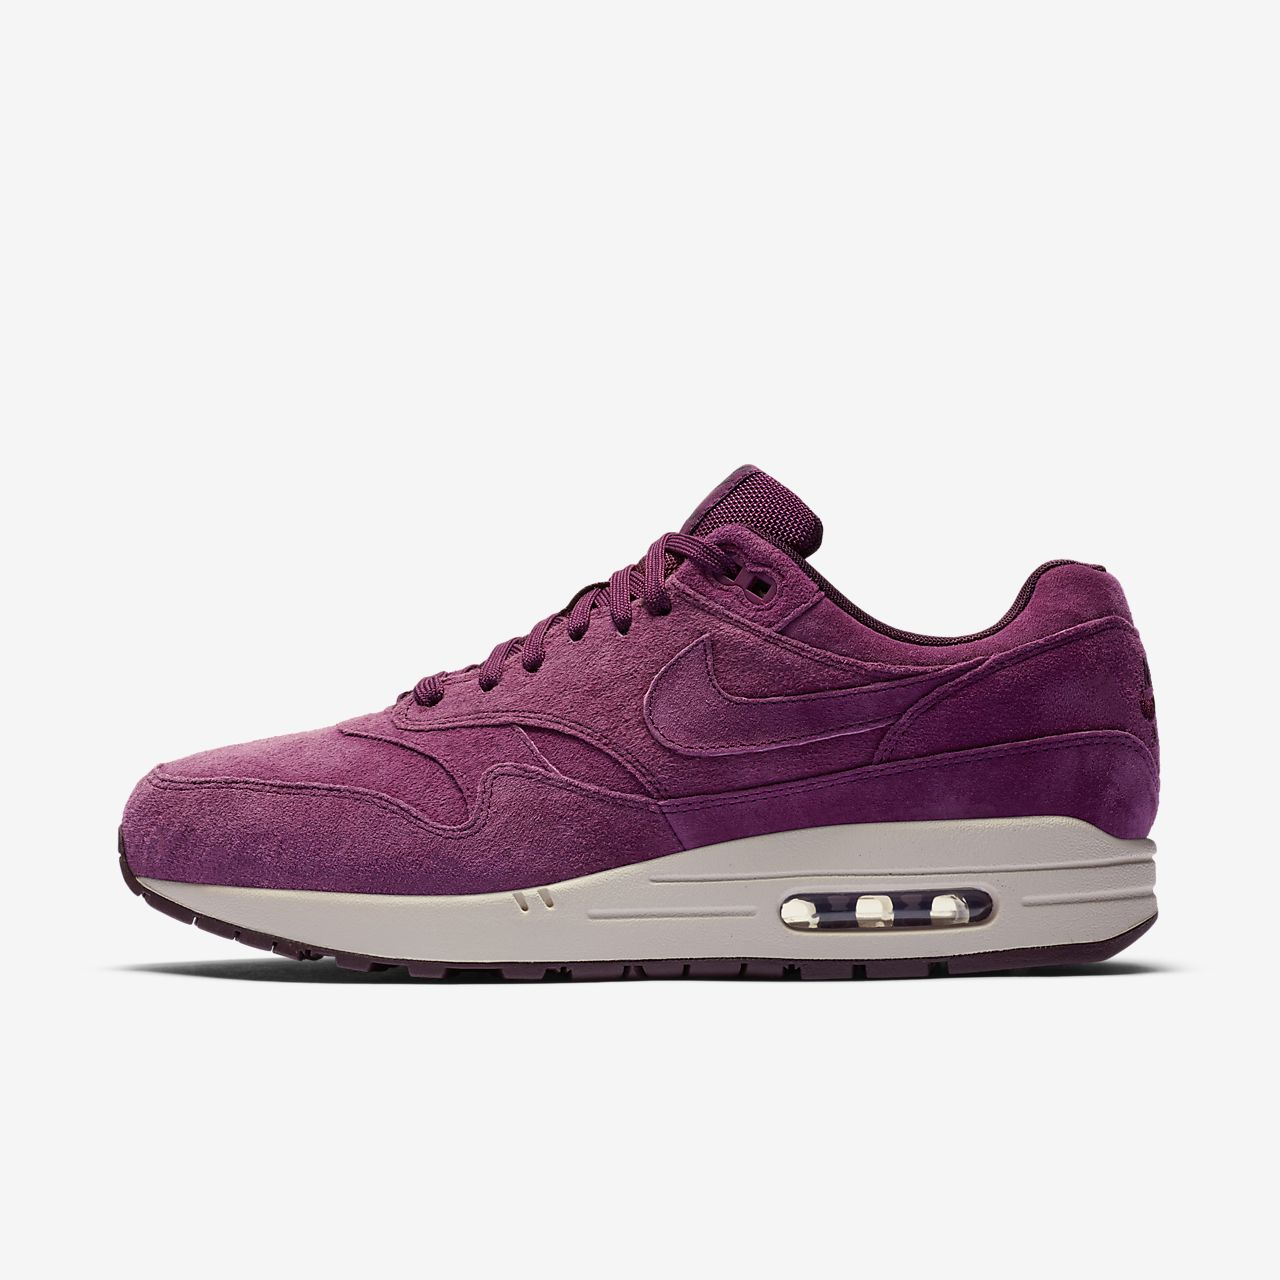 pretty nice 675c7 a3cfb ... Nike Air Max 1 Premium Men s Shoe